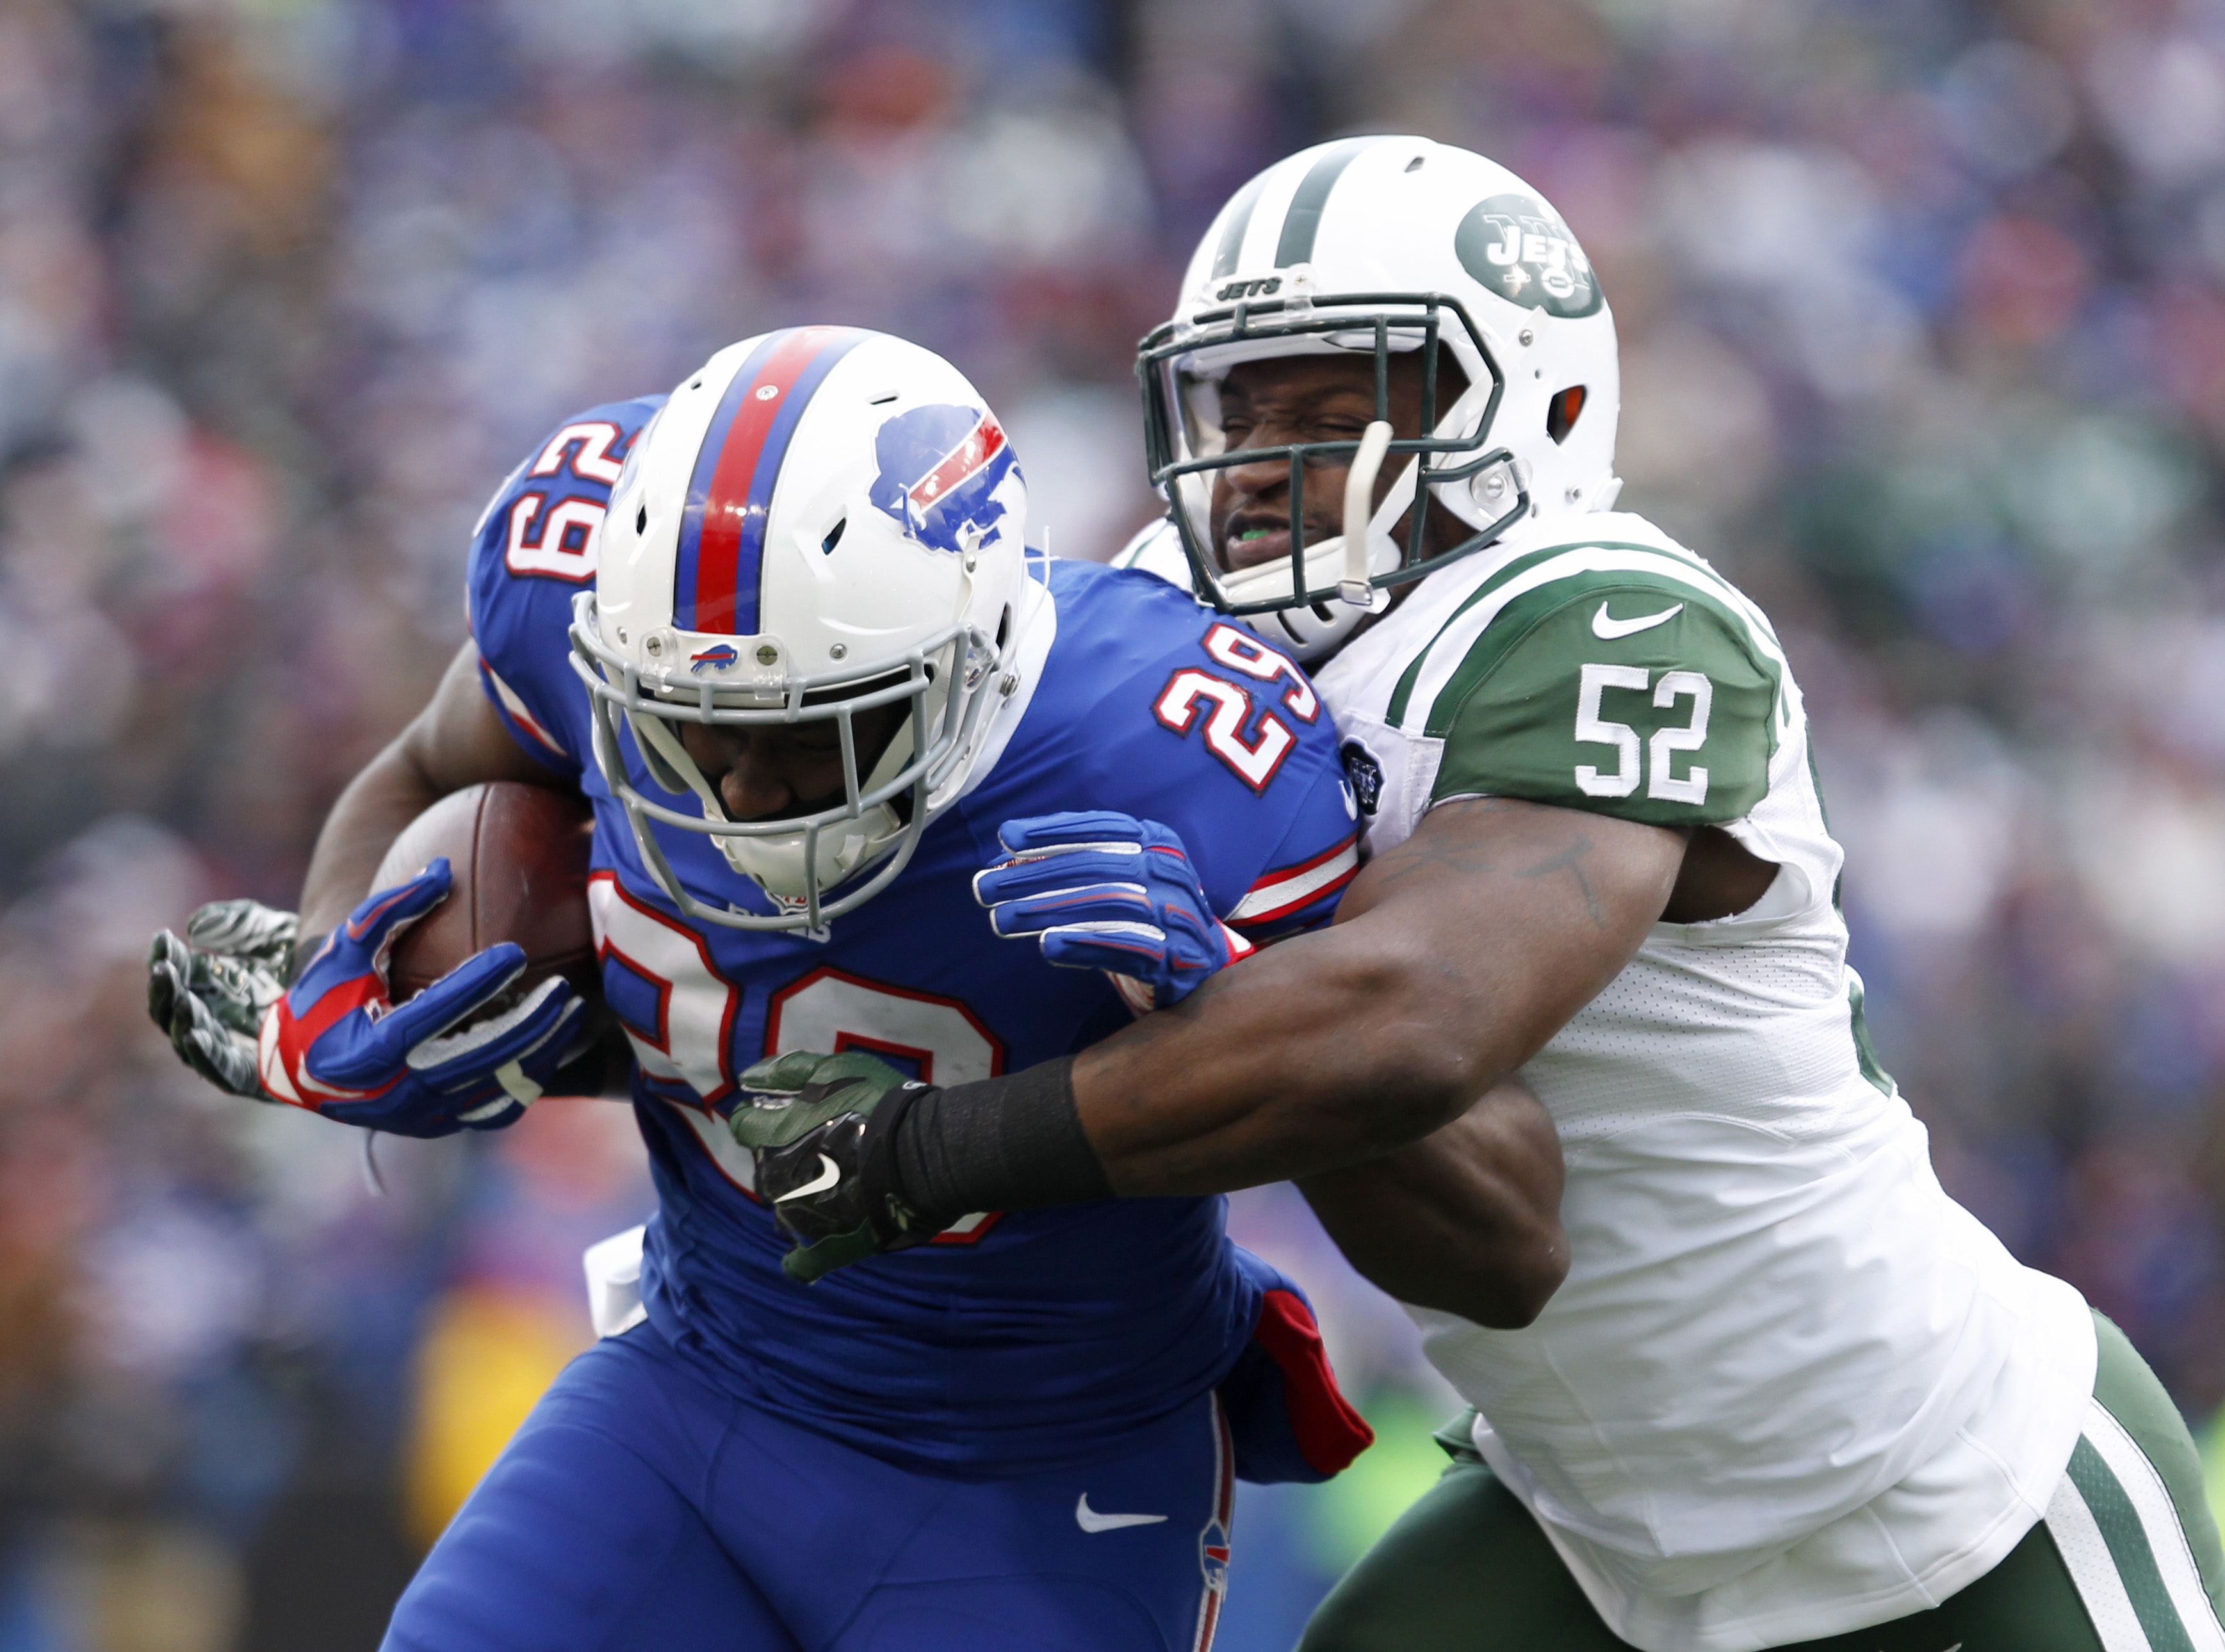 9034835-nfl-new-york-jets-at-buffalo-bills